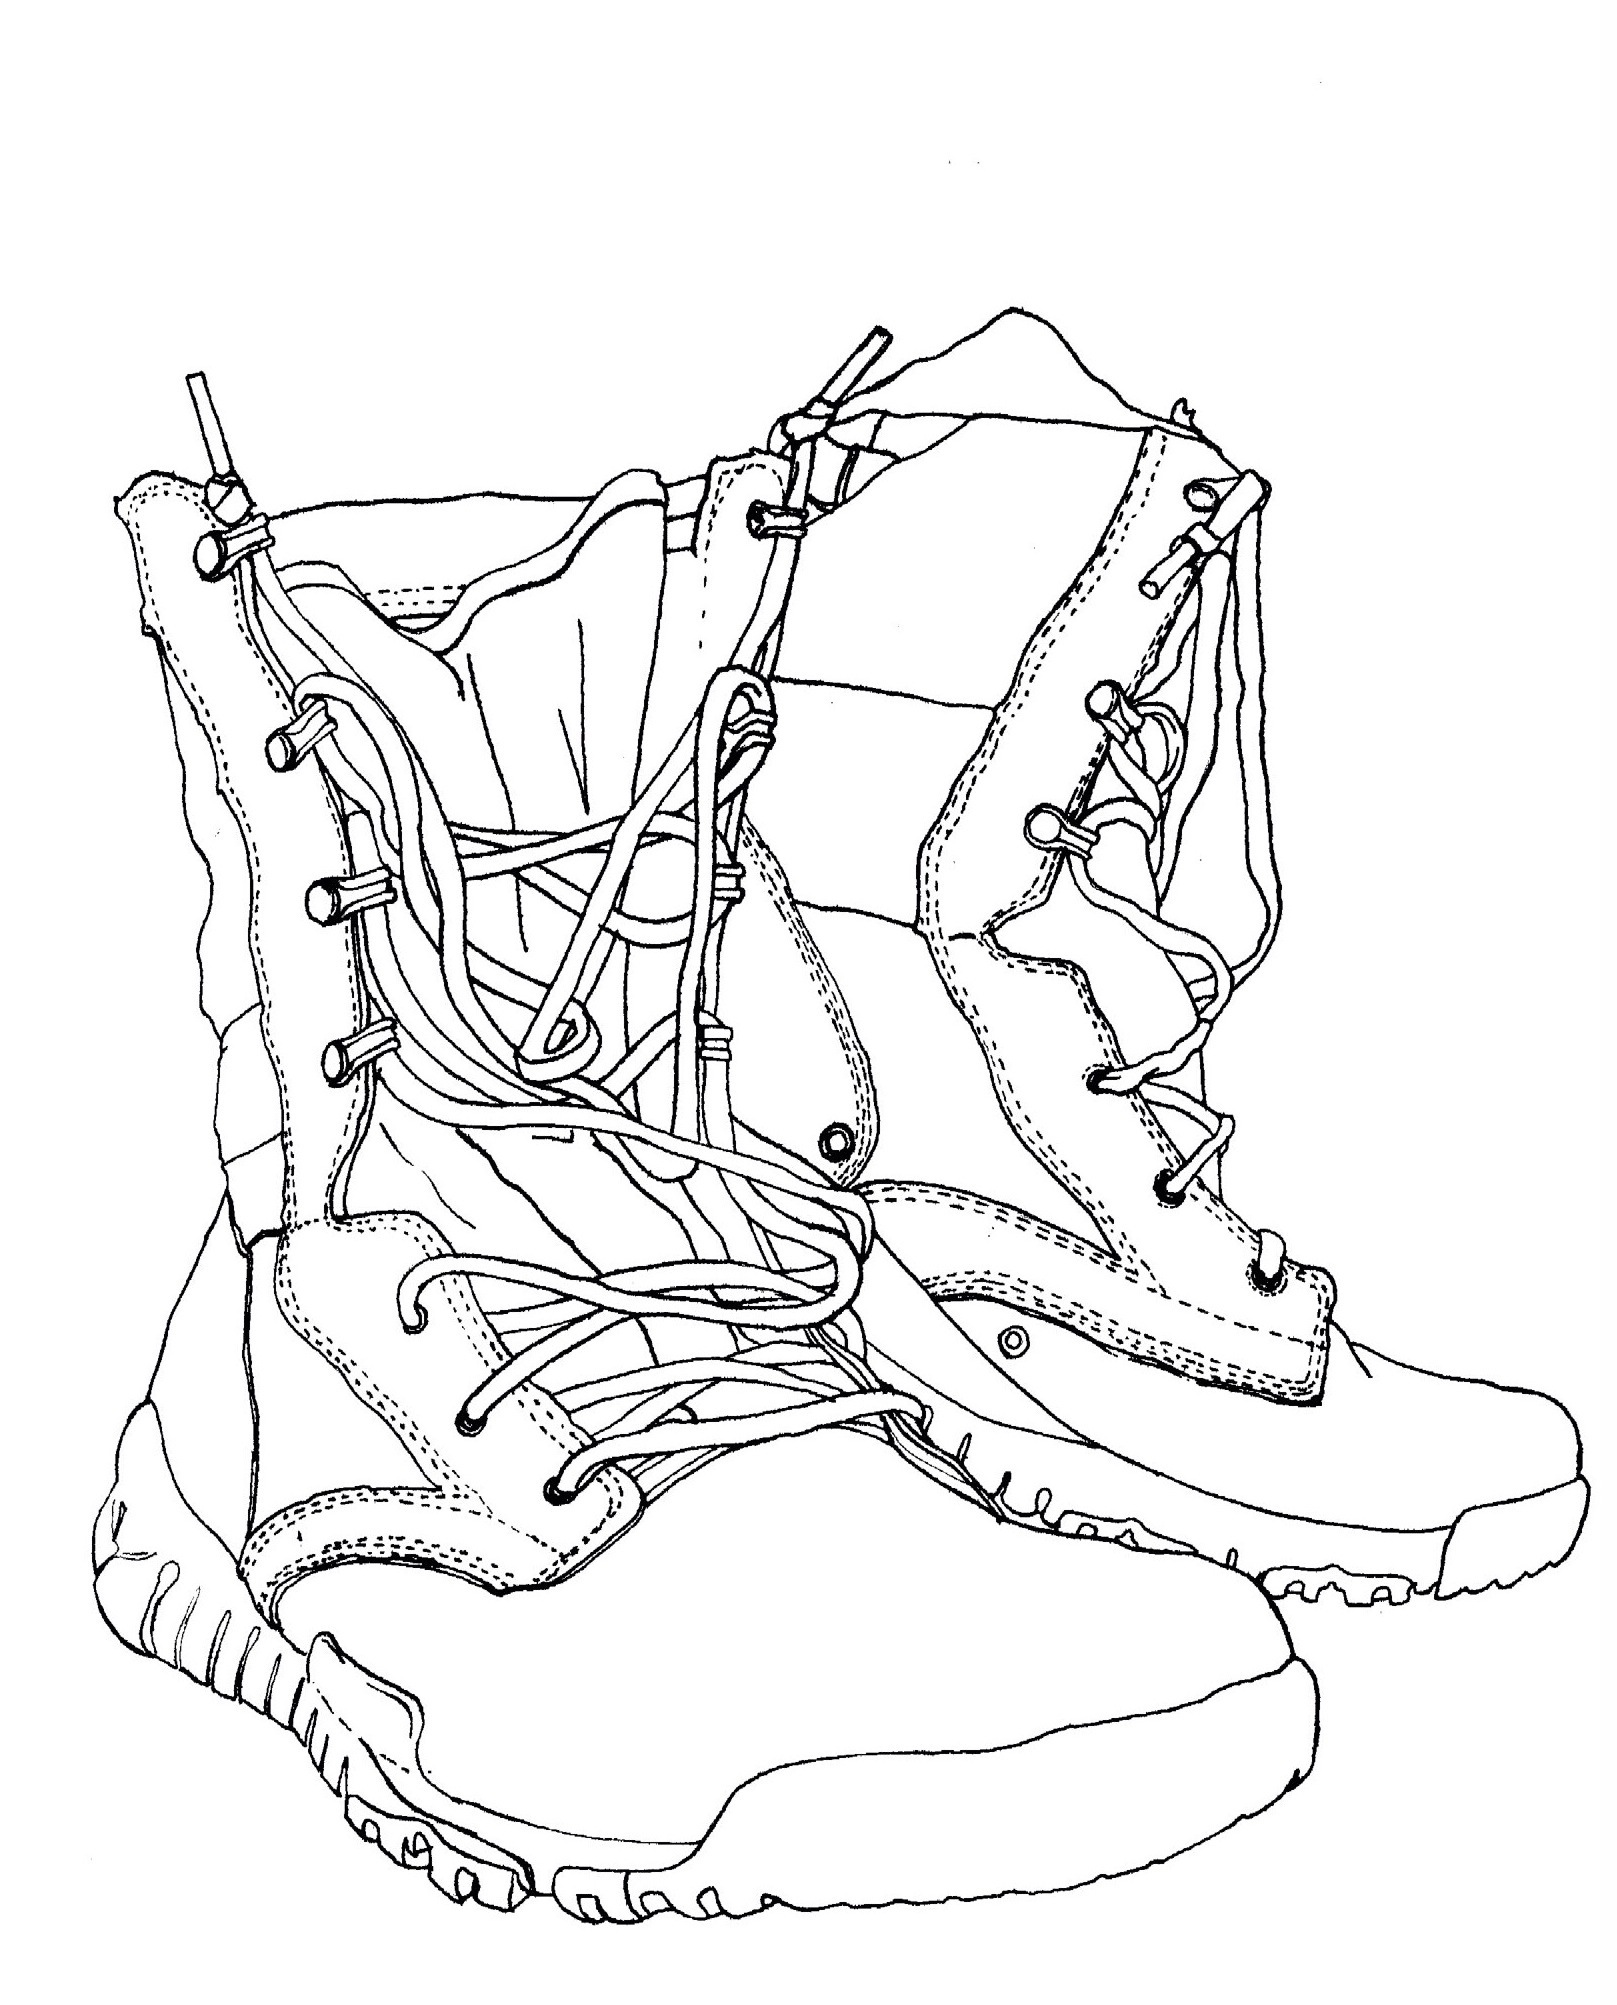 Boot Drawing at GetDrawings.com | Free for personal use Boot Drawing ...